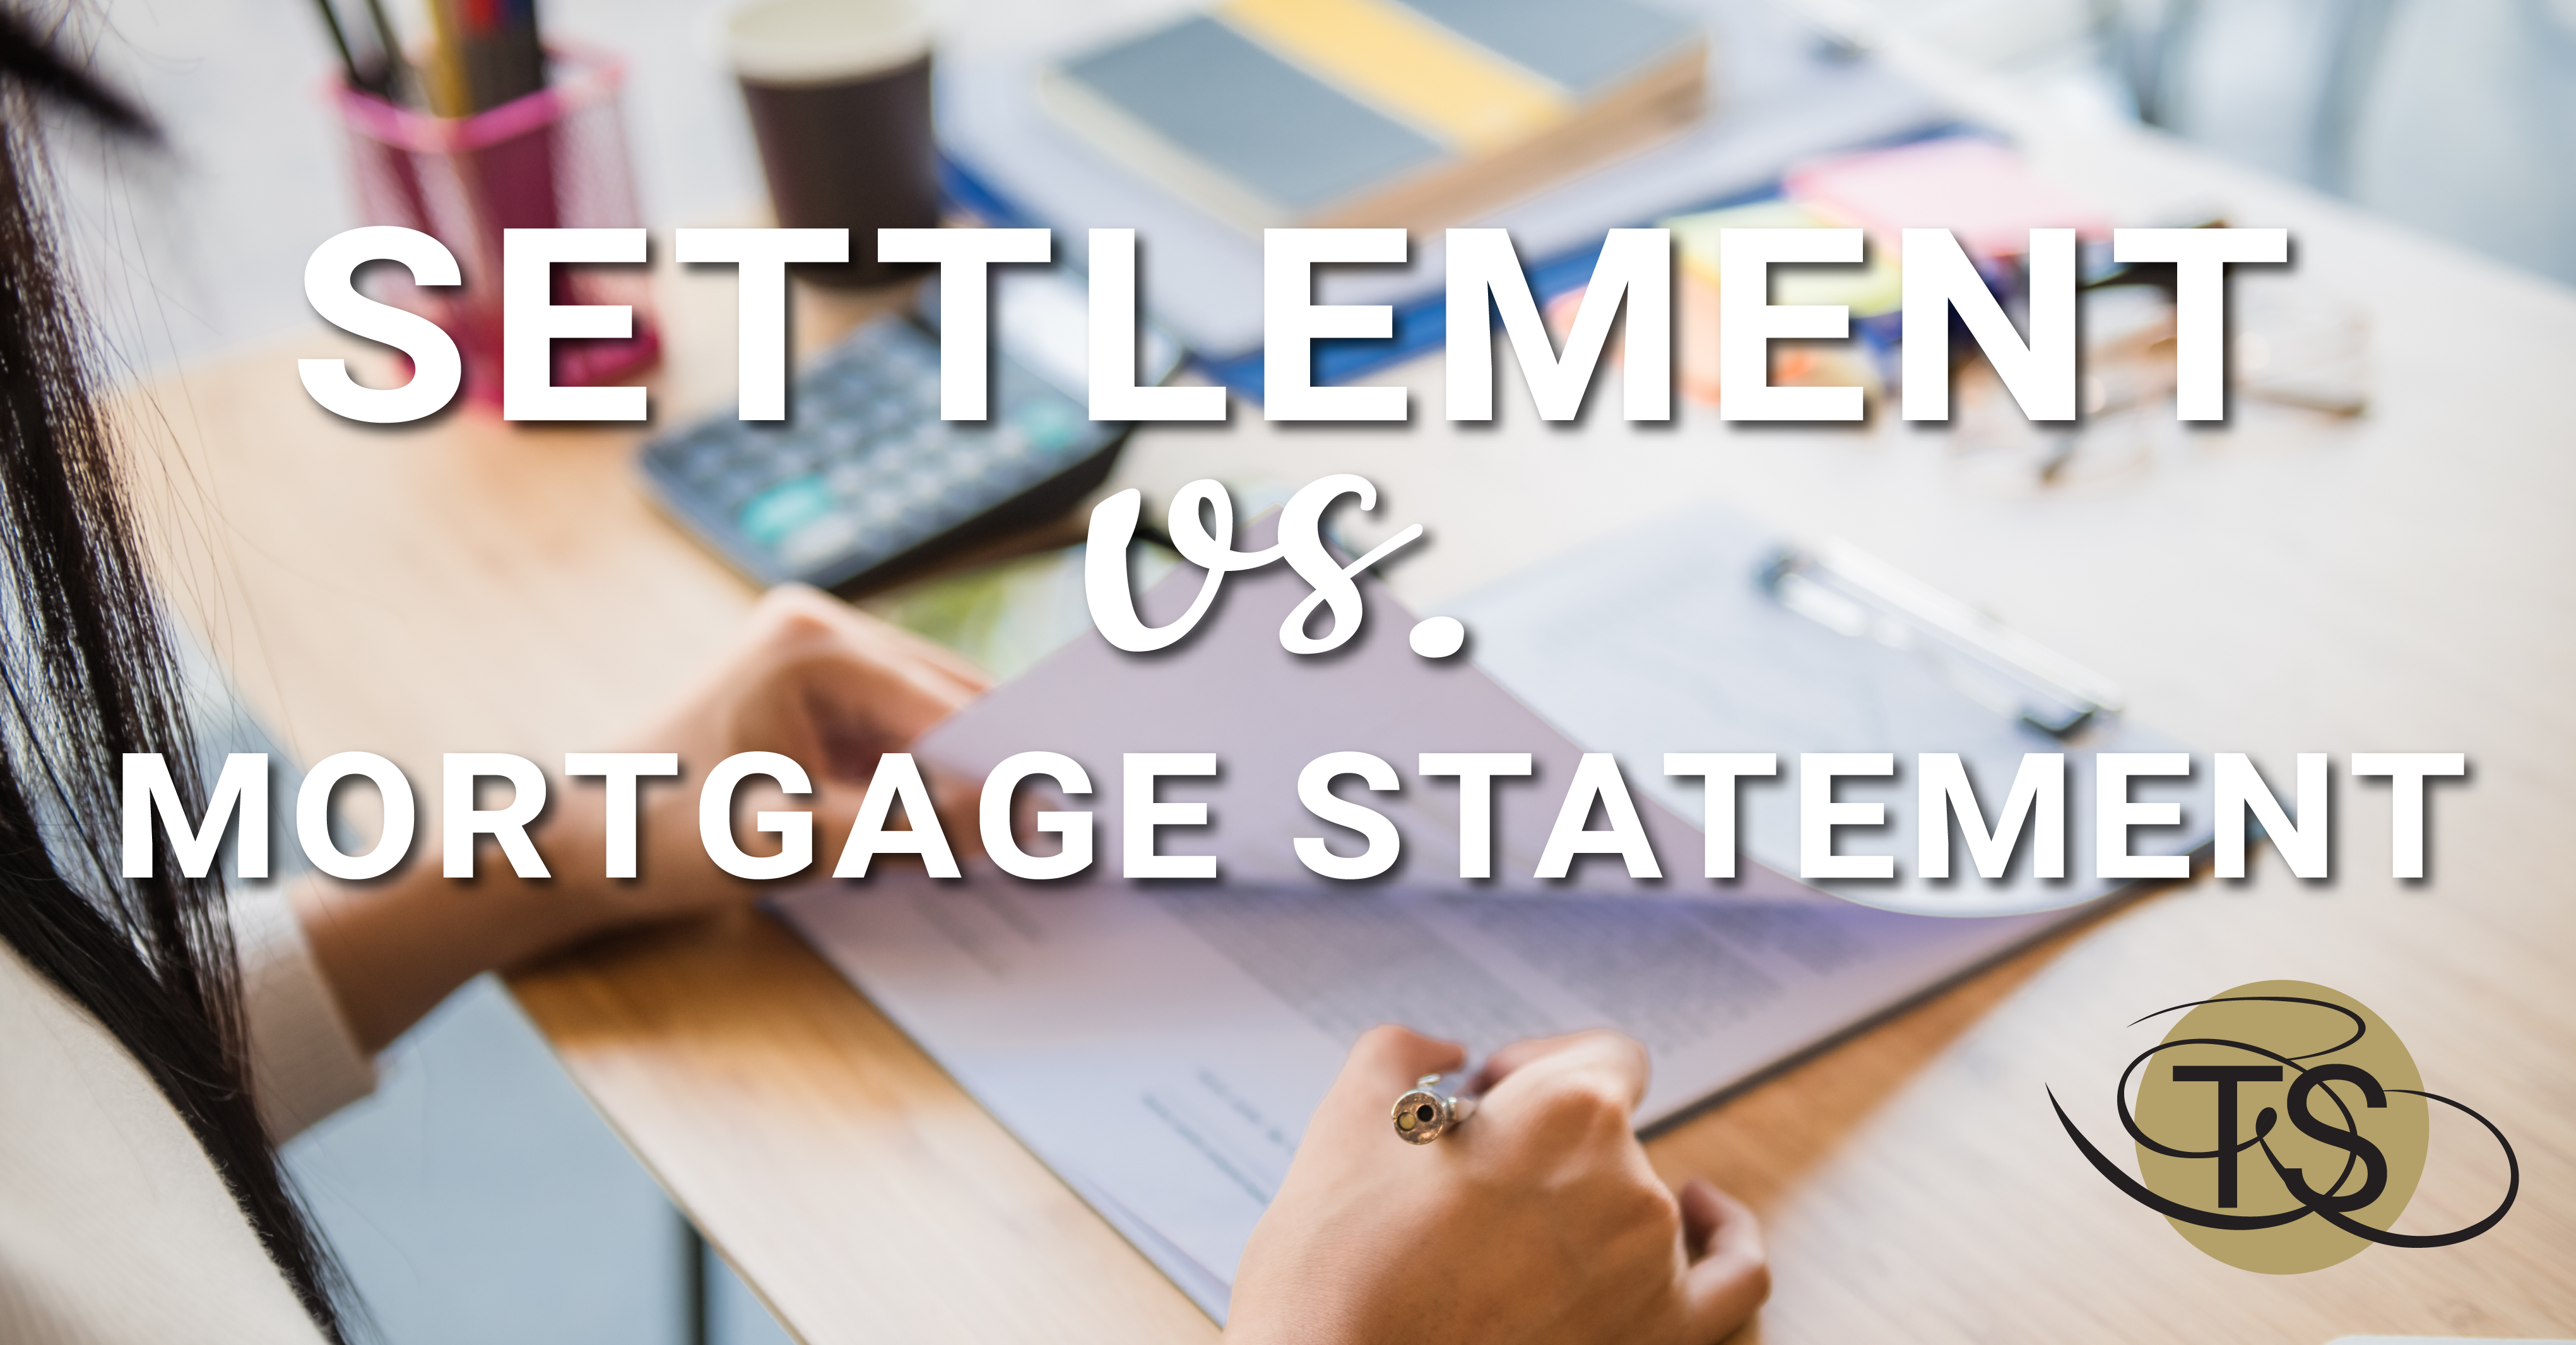 Settlement vs. Mortgage Statements: Why is the payoff on my settlement statement higher than the balance on my mortgage statement?